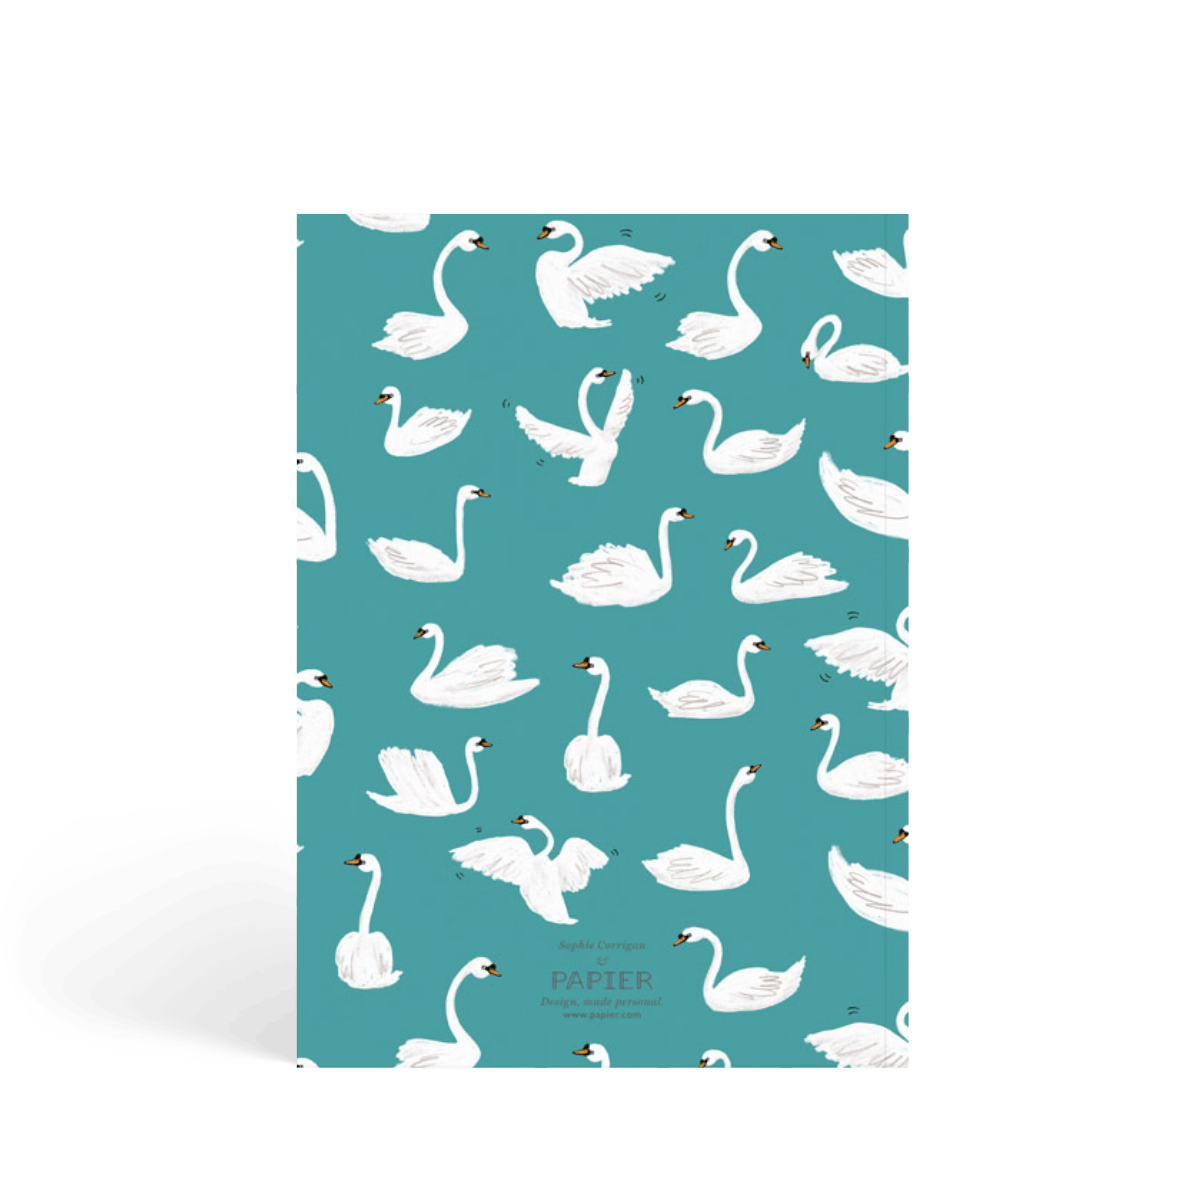 Https%3a%2f%2fwww.papier.com%2fproduct image%2f42078%2f5%2fblue swans 10734 back 1532364322.png?ixlib=rb 1.1